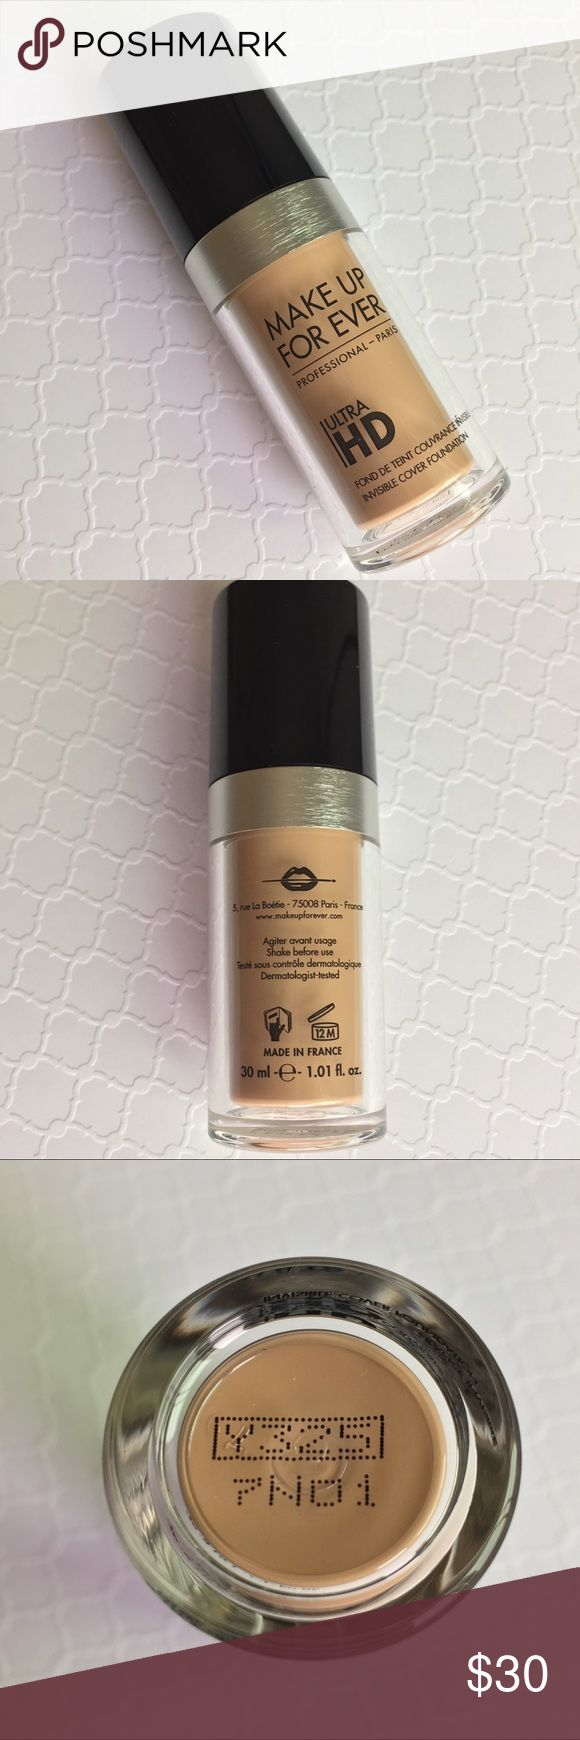 MAKE UP FOR EVER Y325 ULTRA HD FOUNDATION Make Up For Ever Ultra HD Invisible Cover Foundation in shade Y325. Brand new, never used or swatched, no box. Full-sized product. 100% authentic! Please refer to website or your nearest store for color match.  🎁FREE GIFT WITH PURCHASE ON EVERY BUNDLE!  🚫NO TRADES🚫 Makeup Forever Makeup Foundation